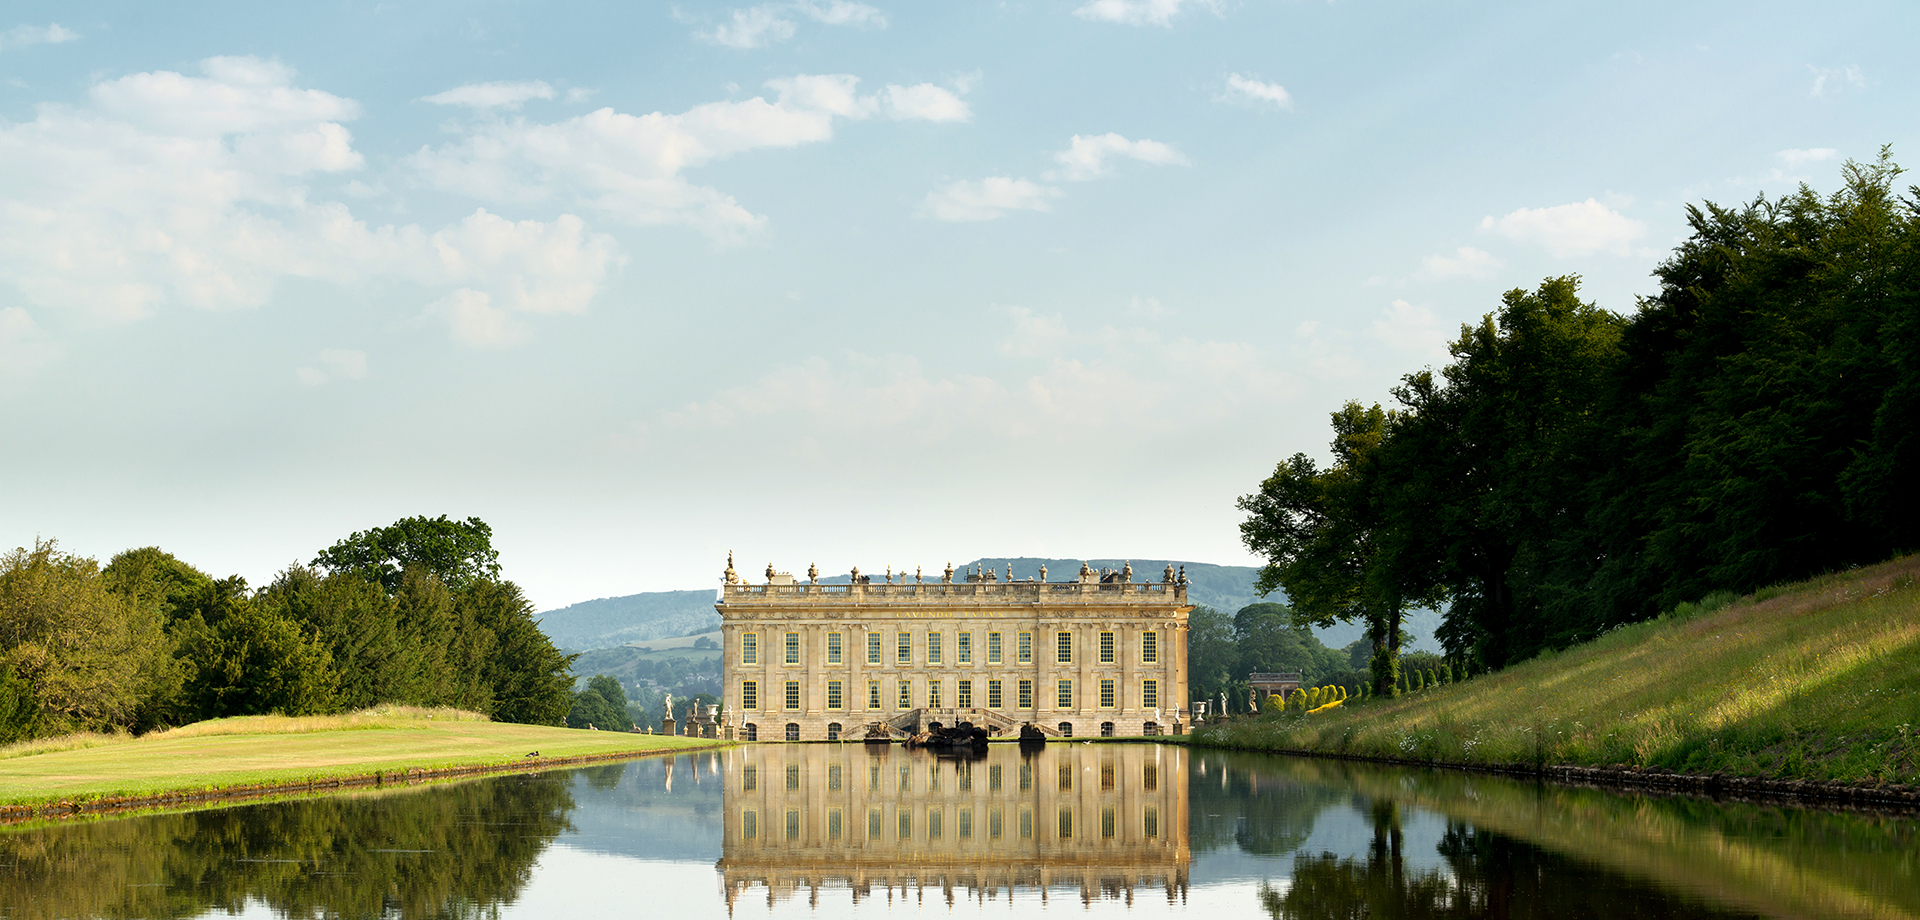 Artists Turn up the Volume at Chatsworth